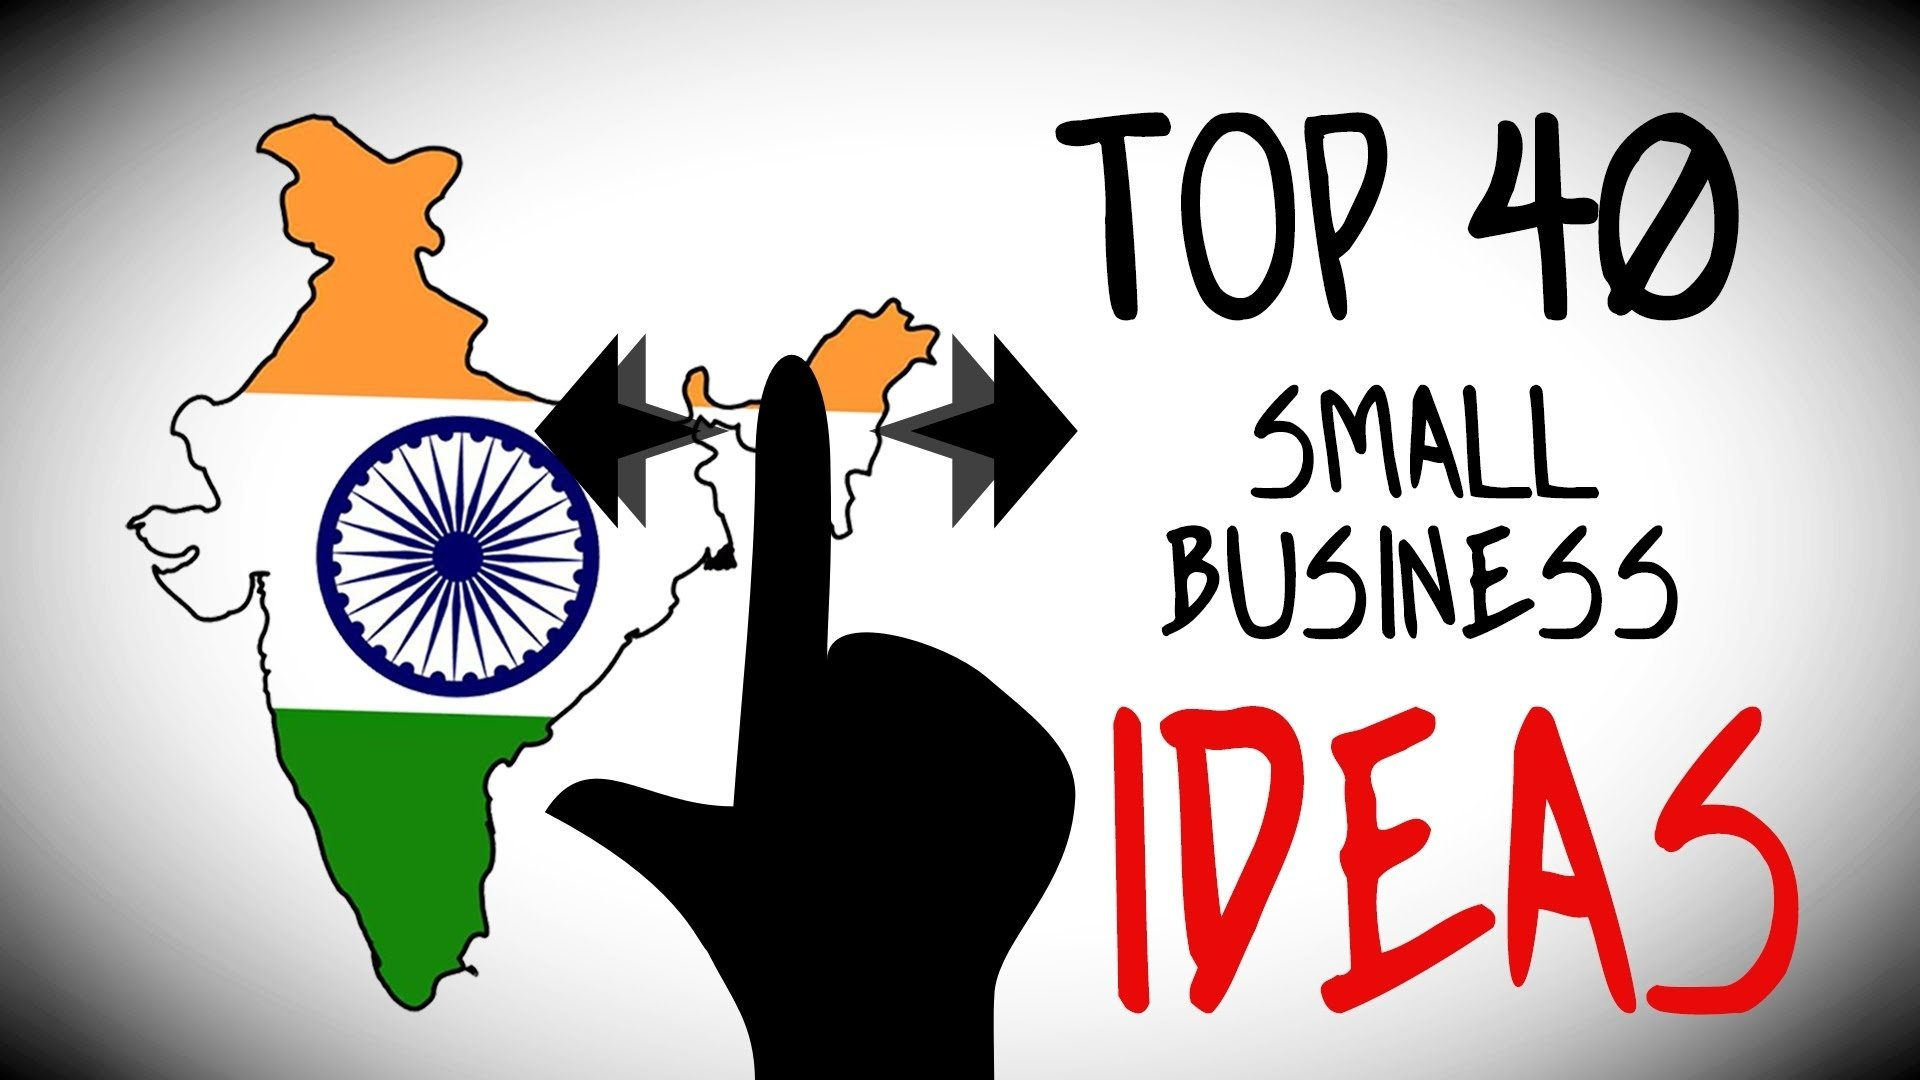 10 Fabulous Ideas For Starting Your Own Business top 40 small business ideas in india for starting your own business 11 2020